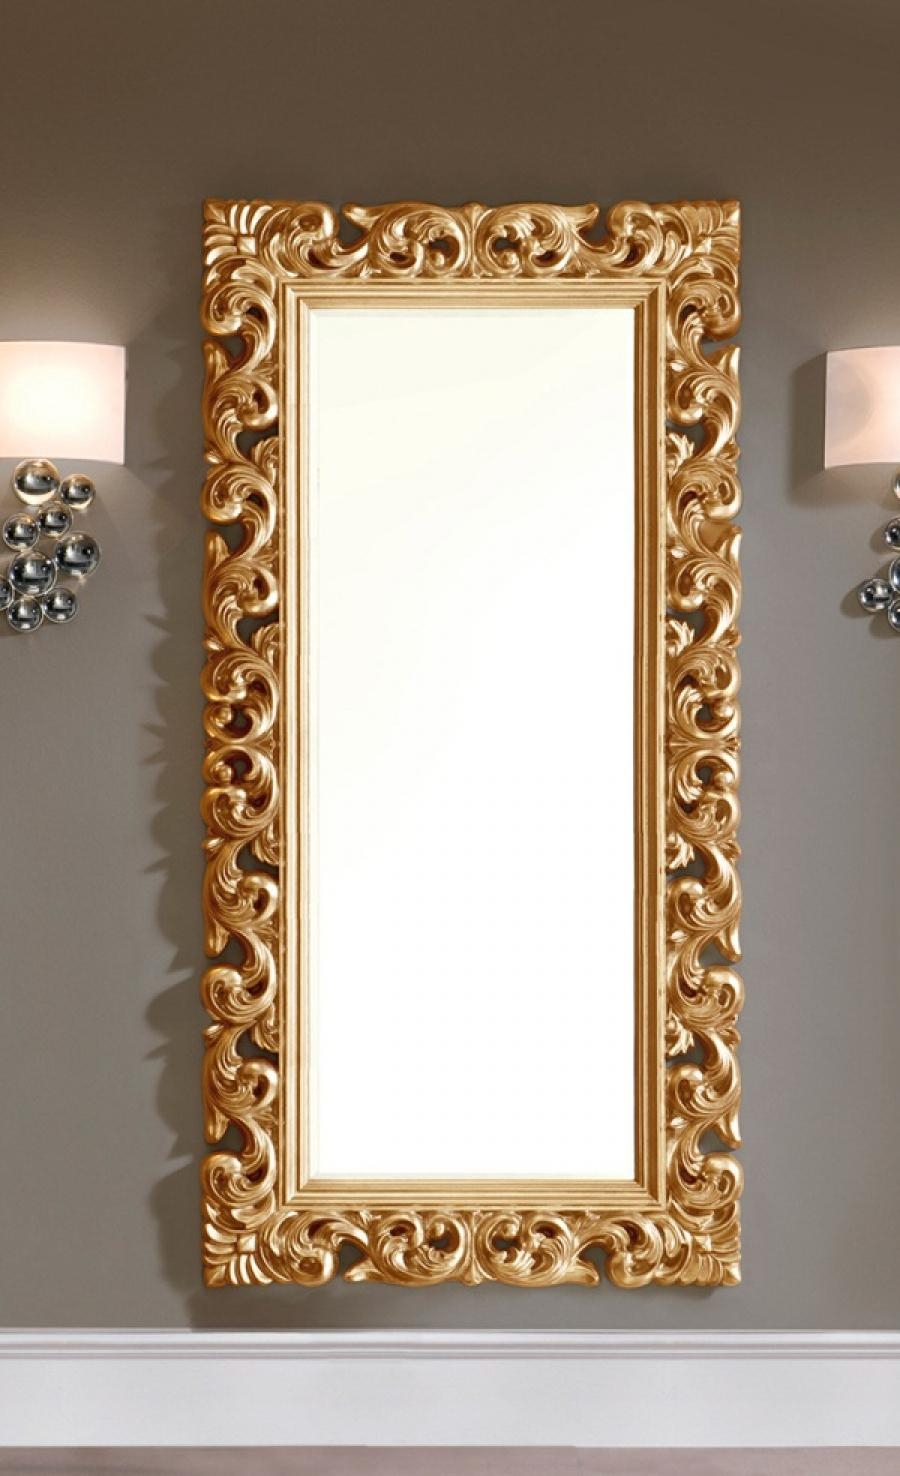 Large Modern Ornate Mirror In Gold Colour Finish Regarding Large Gold Ornate Mirror (Image 12 of 15)